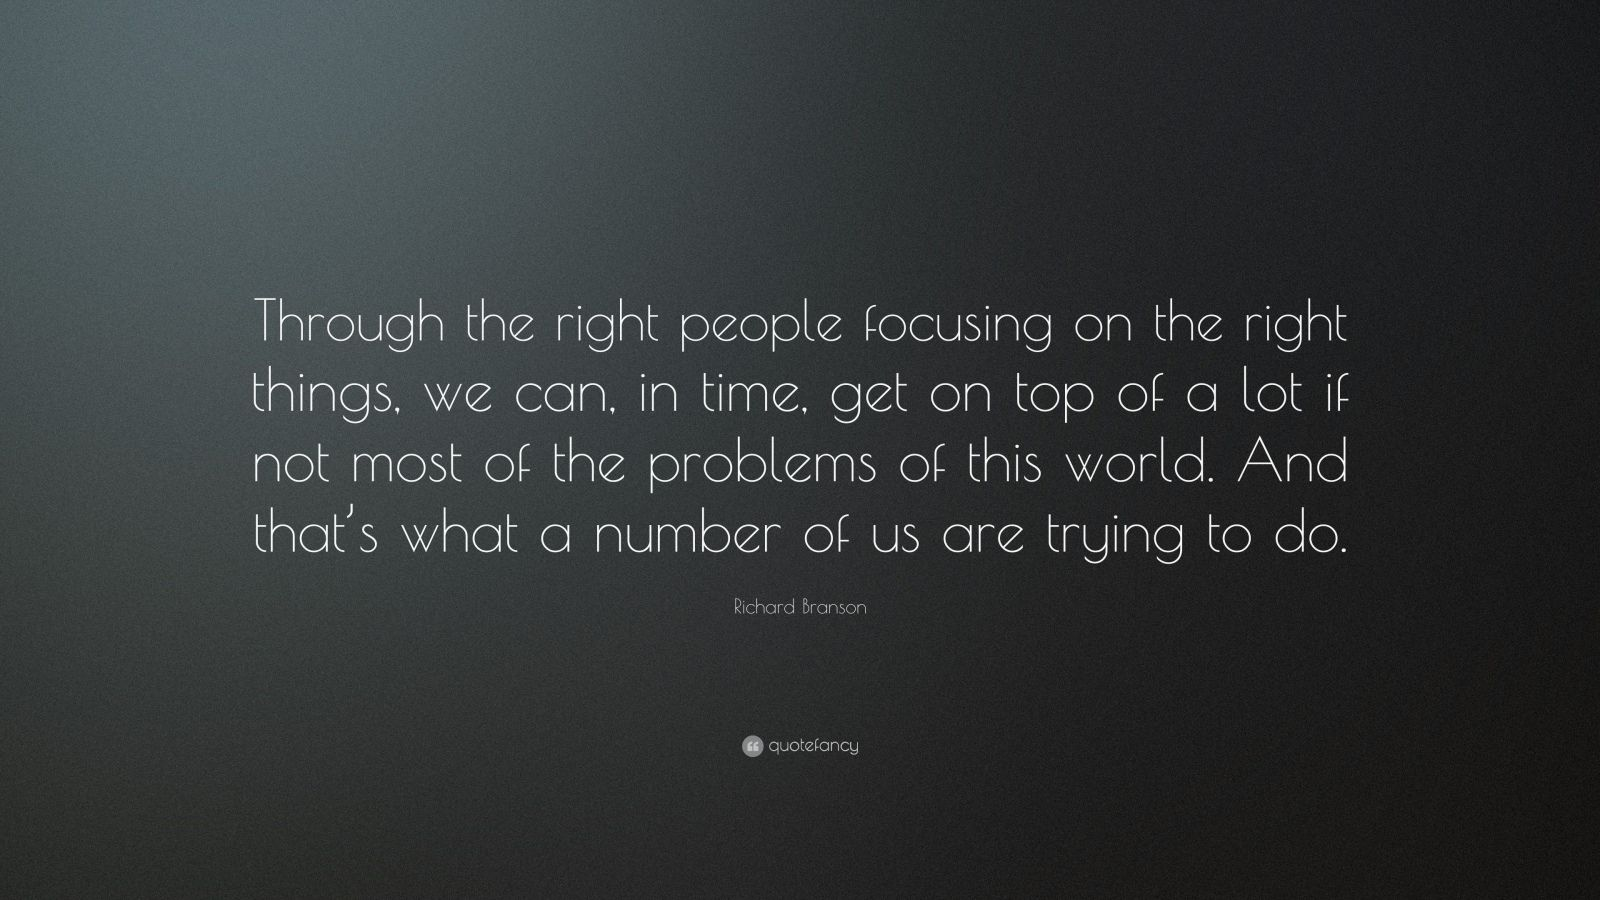 """Richard Branson Quote: """"Through the right people focusing on the right things, we can, in time, get on top of a lot if not most of the problems of this world. And that's what a number of us are trying to do."""""""